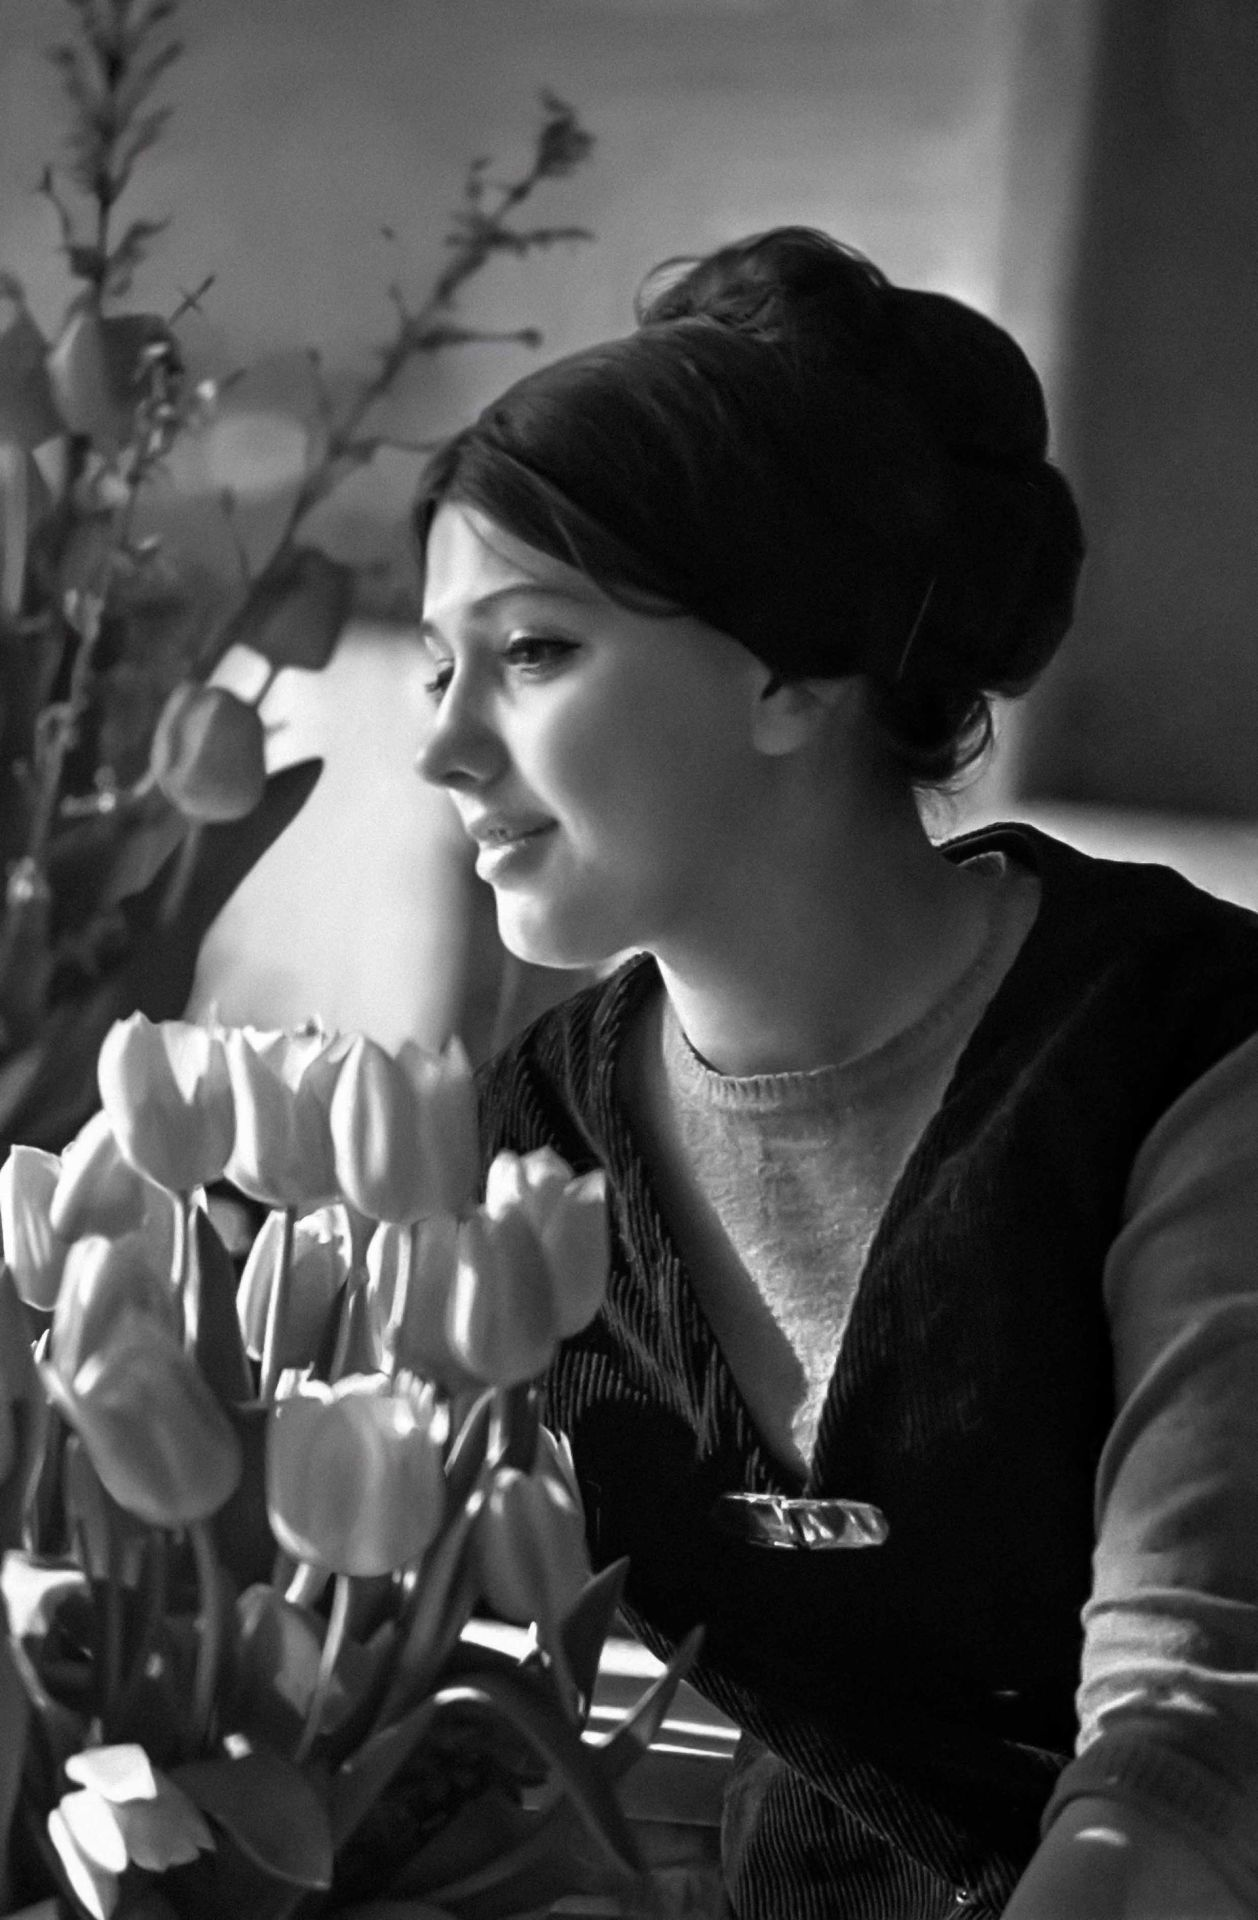 Muscovite Lena Stepanova at a flower exhibition in Nezabudka flower shop (Moscow). Photo by V. Budan (1969) #1960s#spring#soviet union#soviet#ussr#russia#history#photography#vintage#retro #black and white